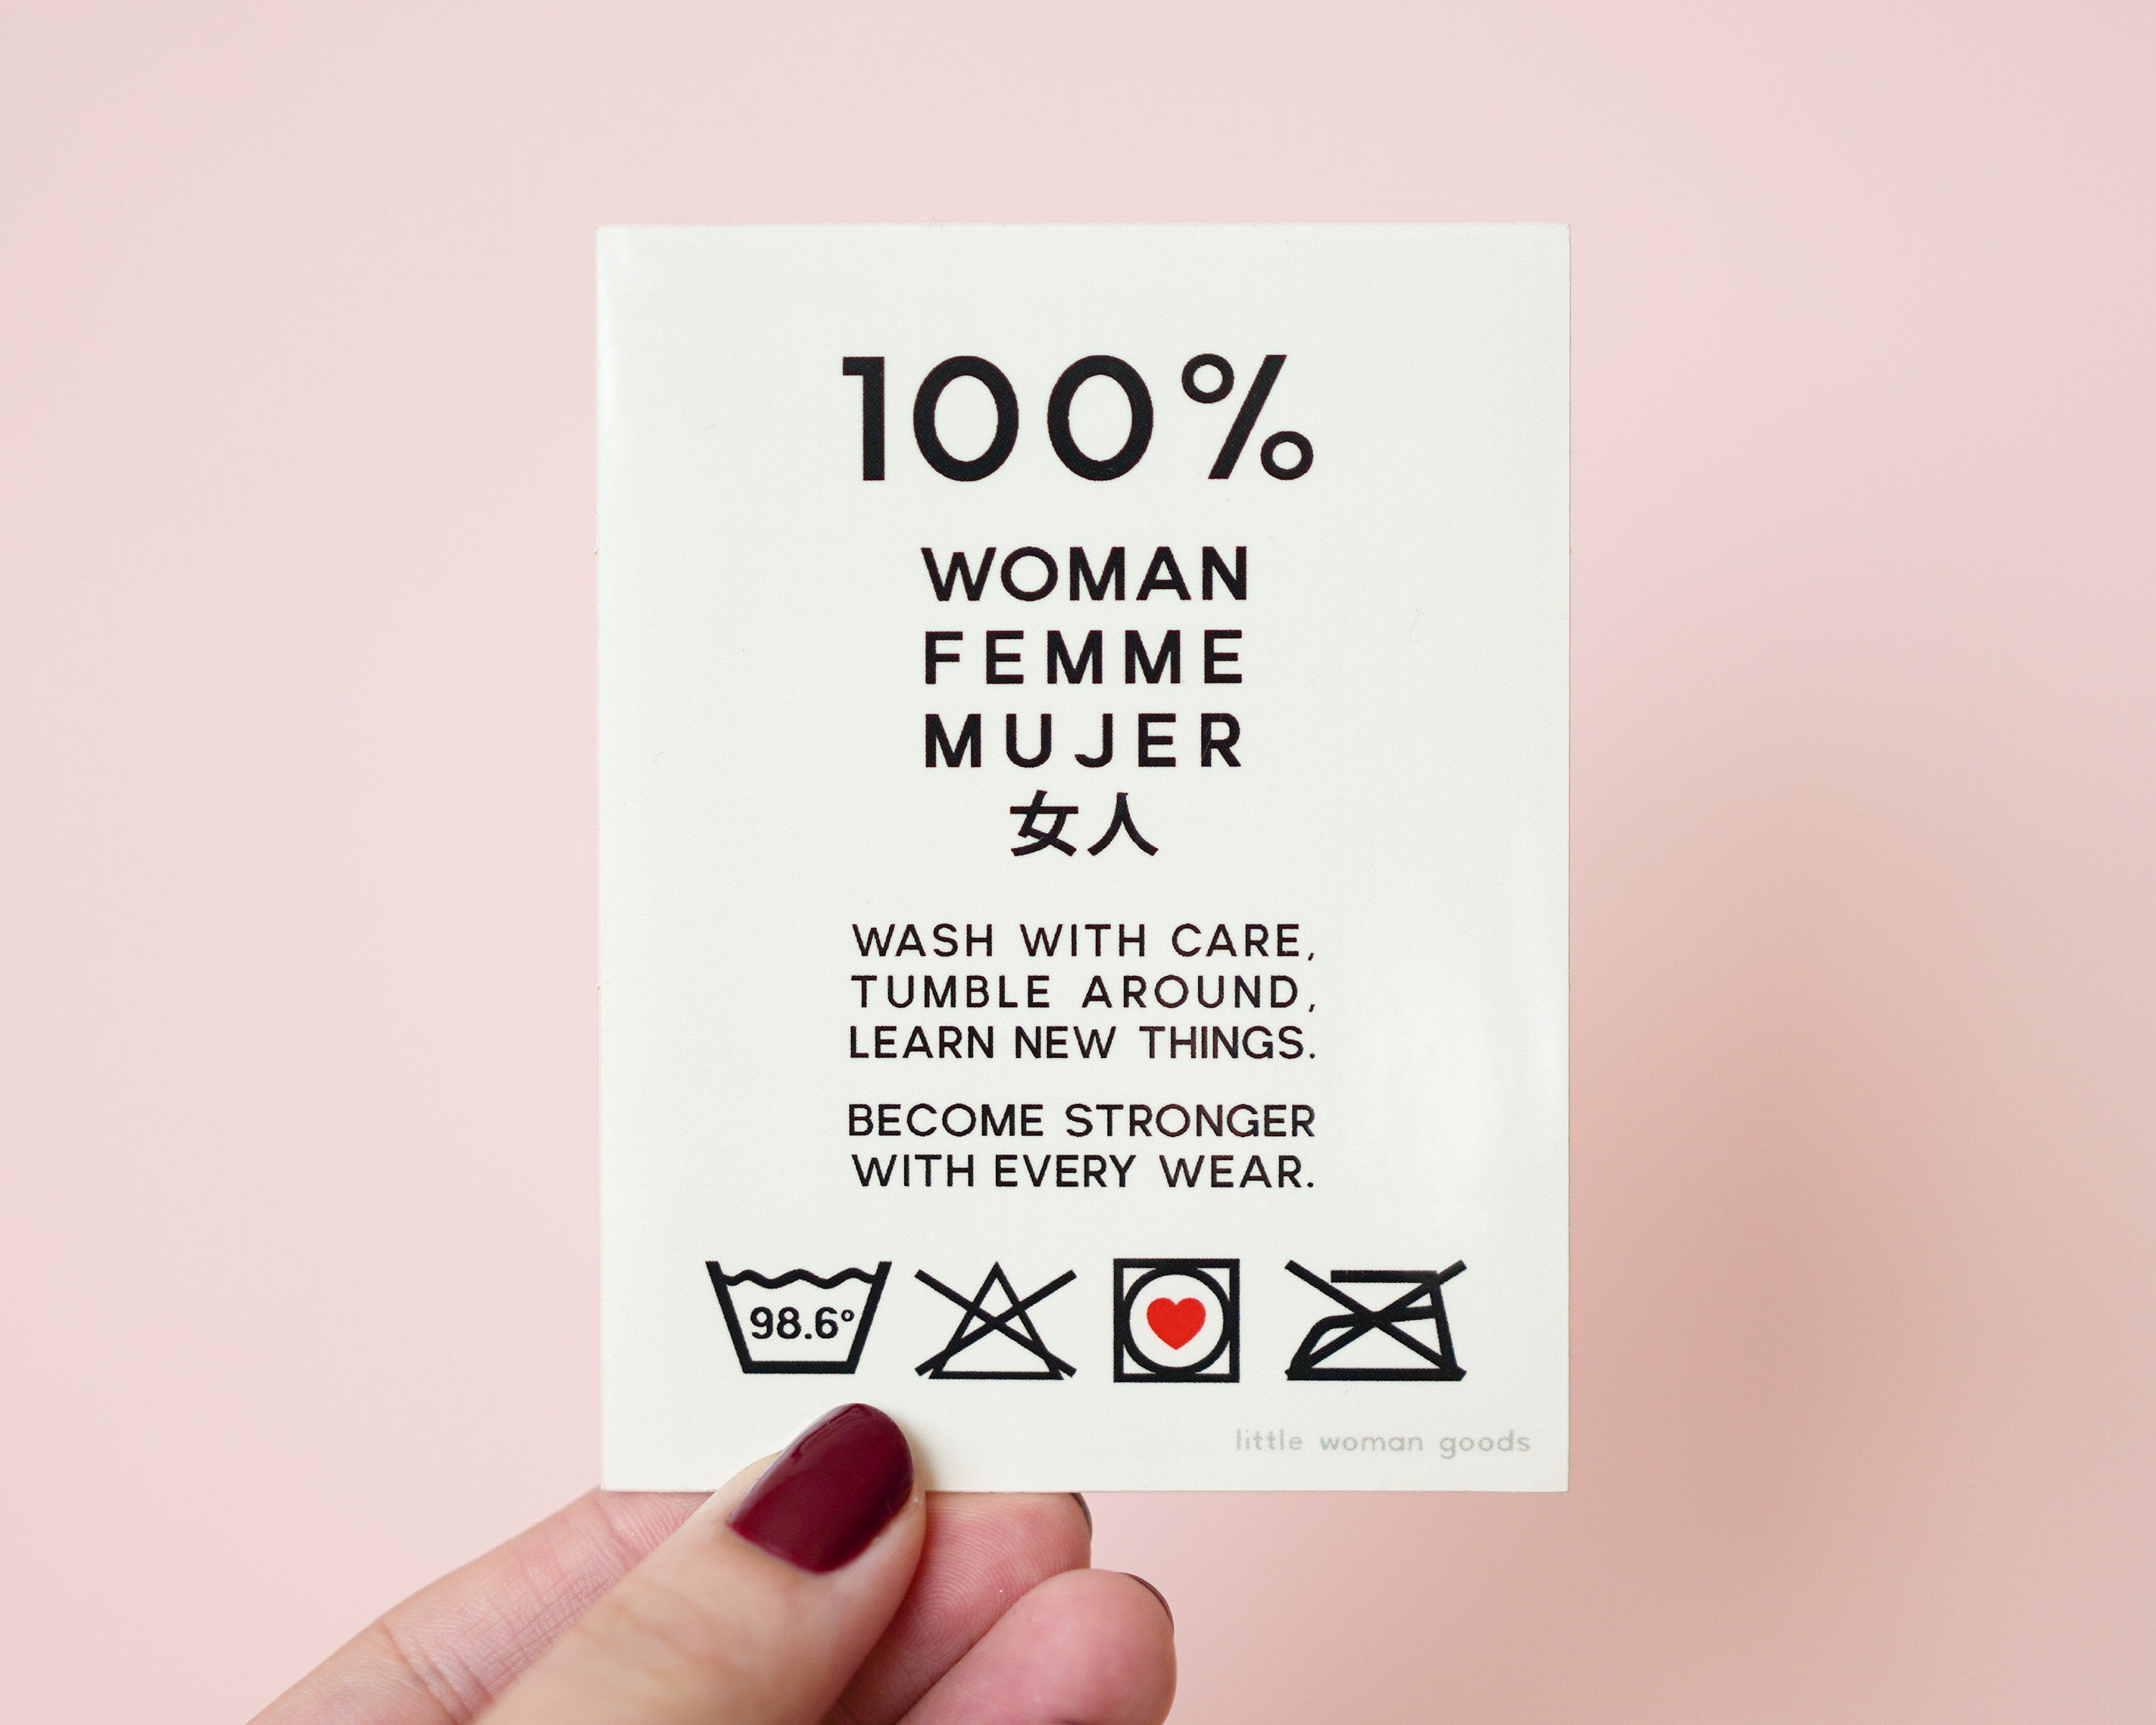 Feminist Vinyl Sticker- Care Instructions 100% Woman Feminist Design Minimalist Planner Sticker Laptop Sticker Waterproof Carsafe